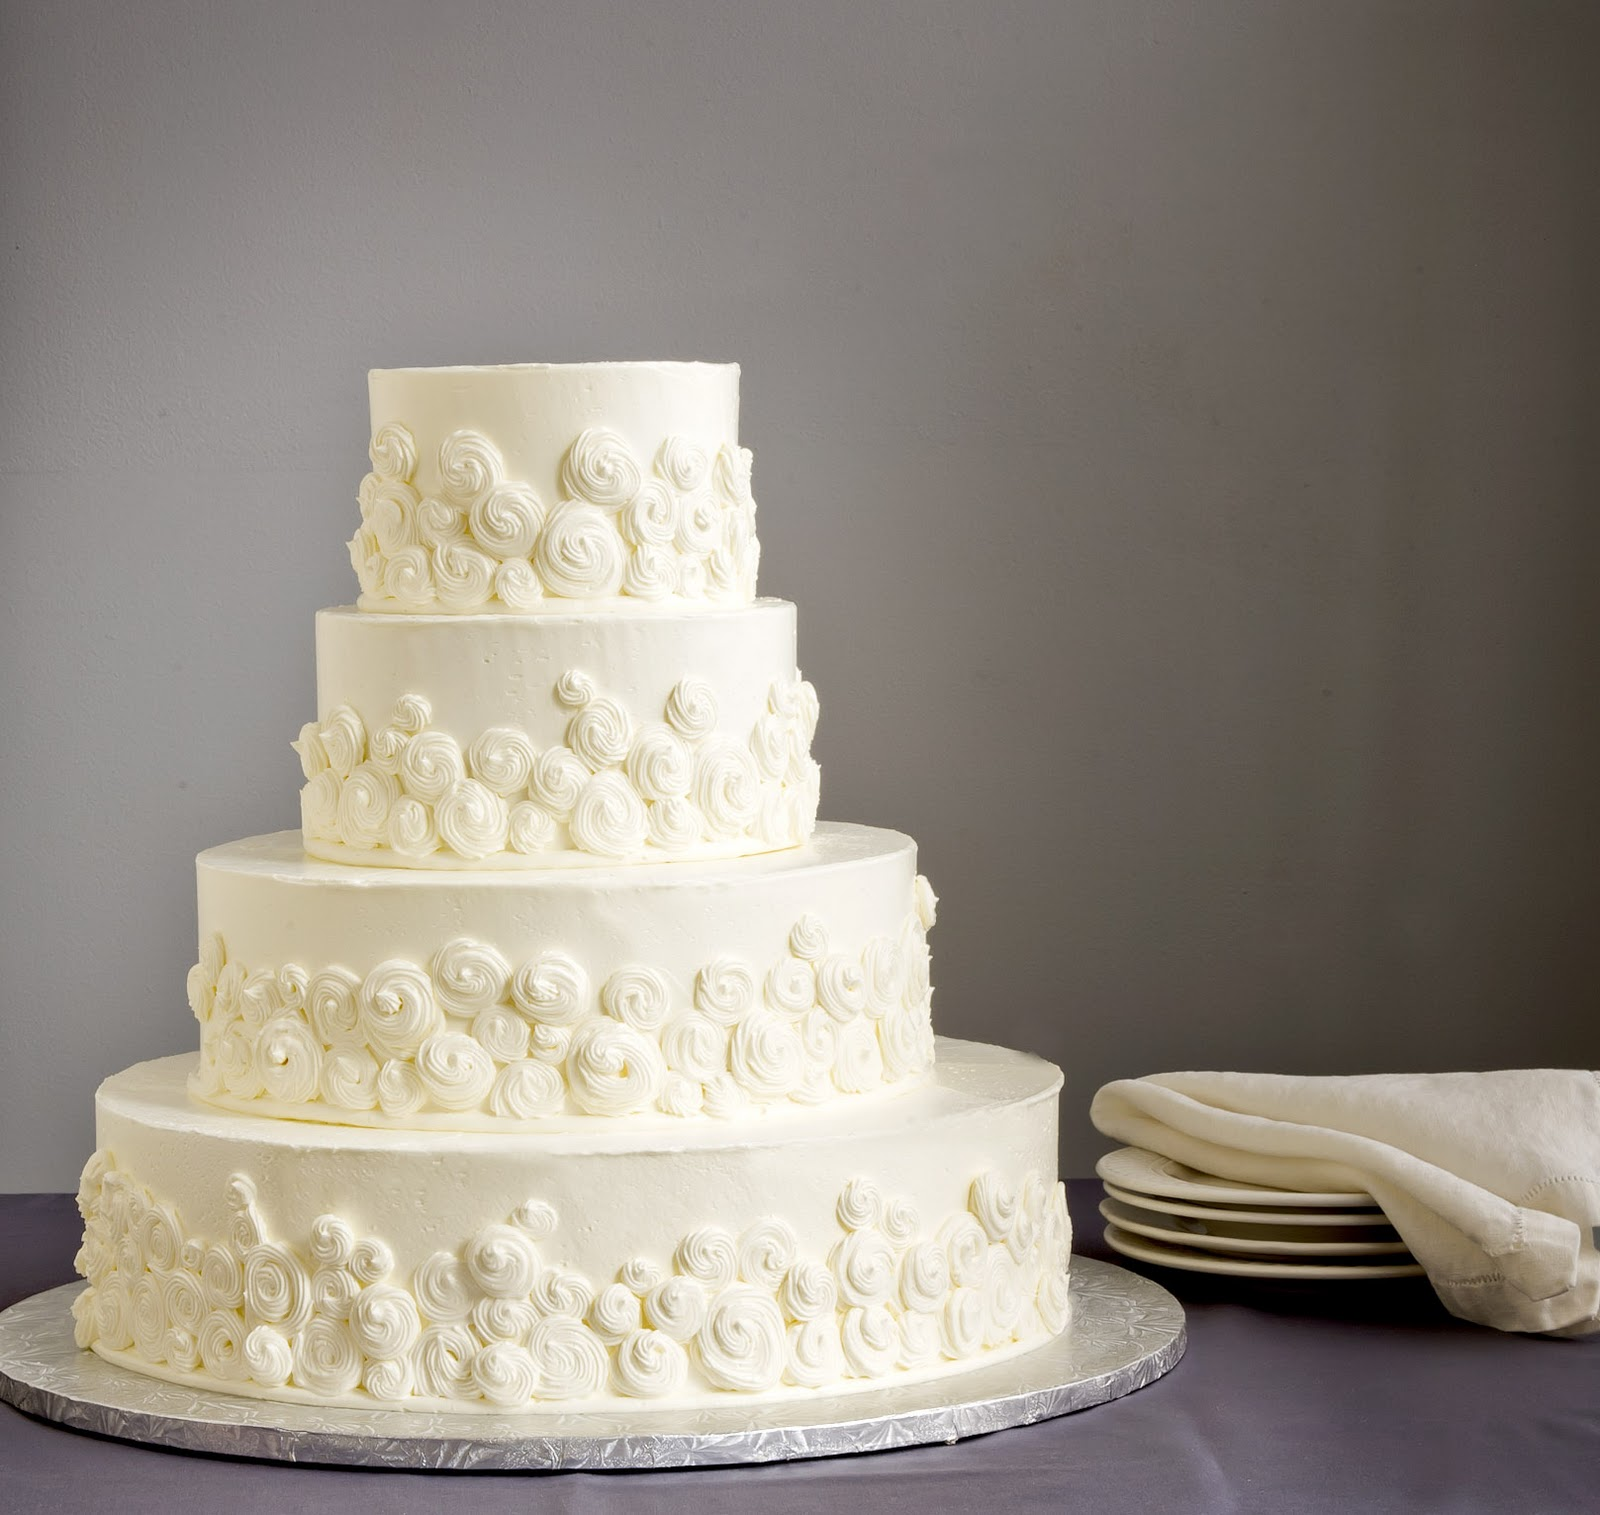 Fun Wedding Cake Ideas: A Simple Cake: THREE NEW Wedding Cake Ideas